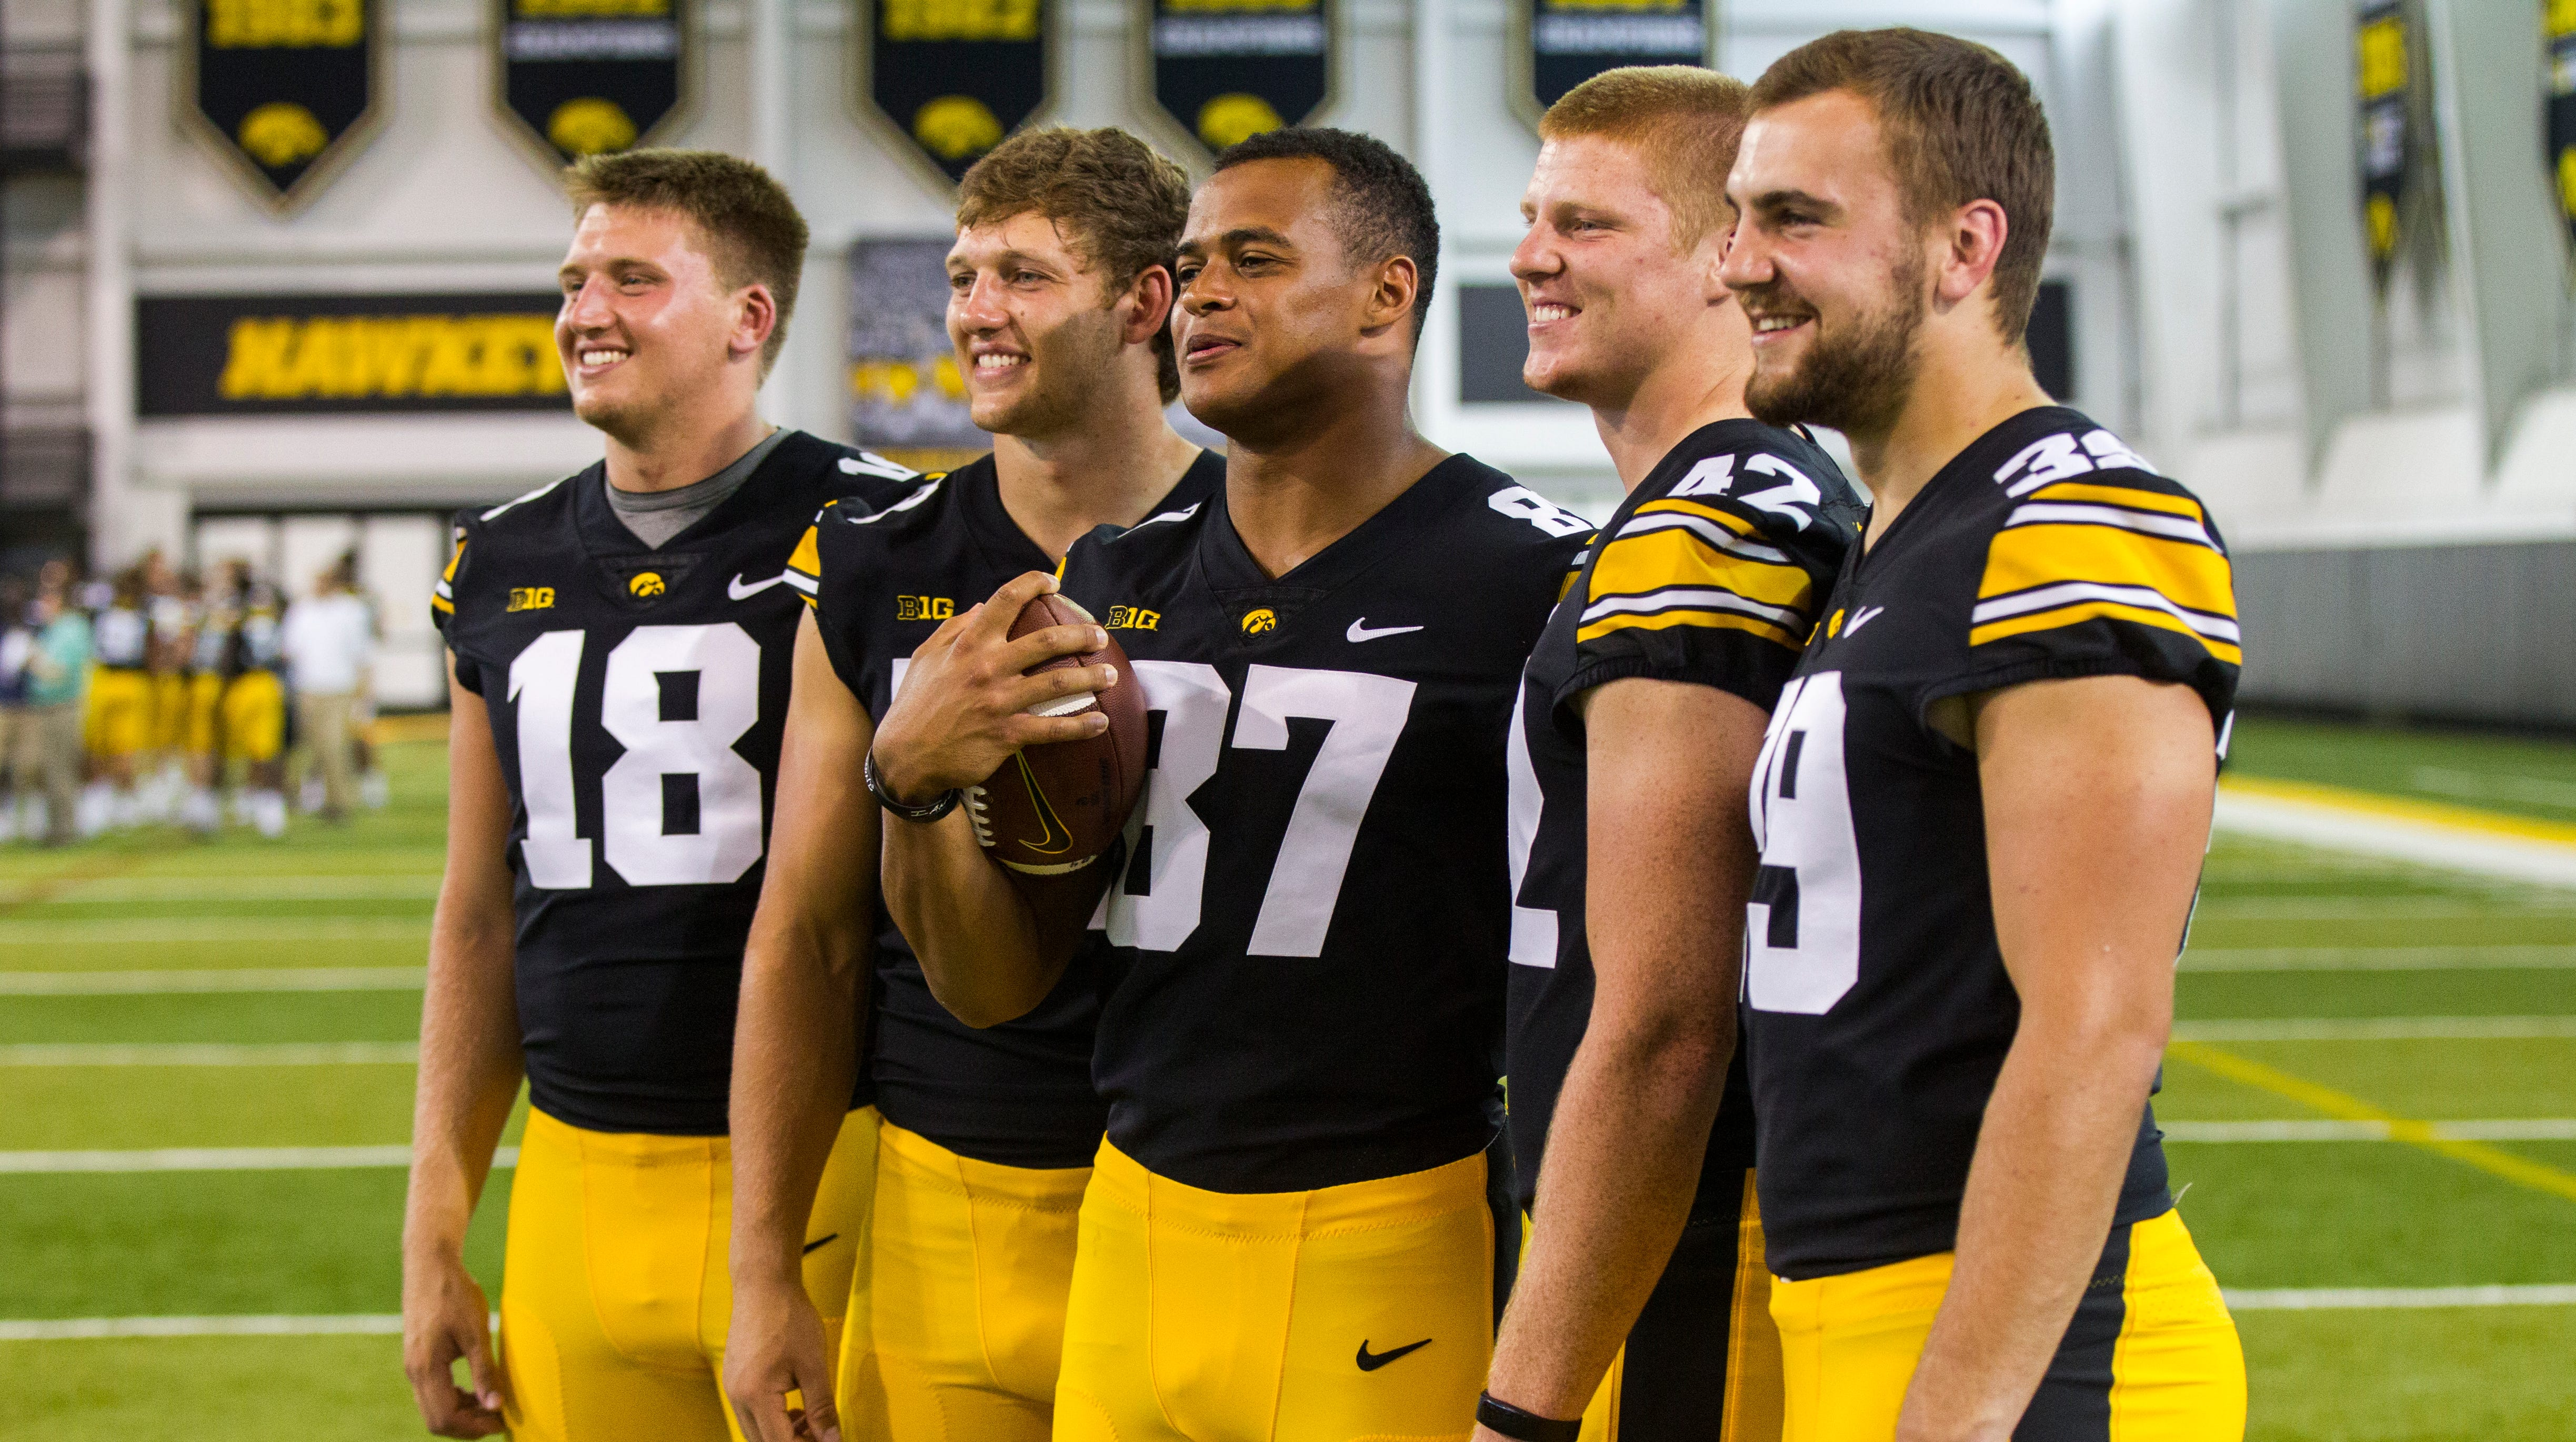 Iowa tight ends Drew Cook, T.J. Hockenson, Noah Fant, Shaun Beyer, and Nate Wieting pose for a photo during Iowa football media day on Friday, Aug. 10, 2018, in Iowa City.